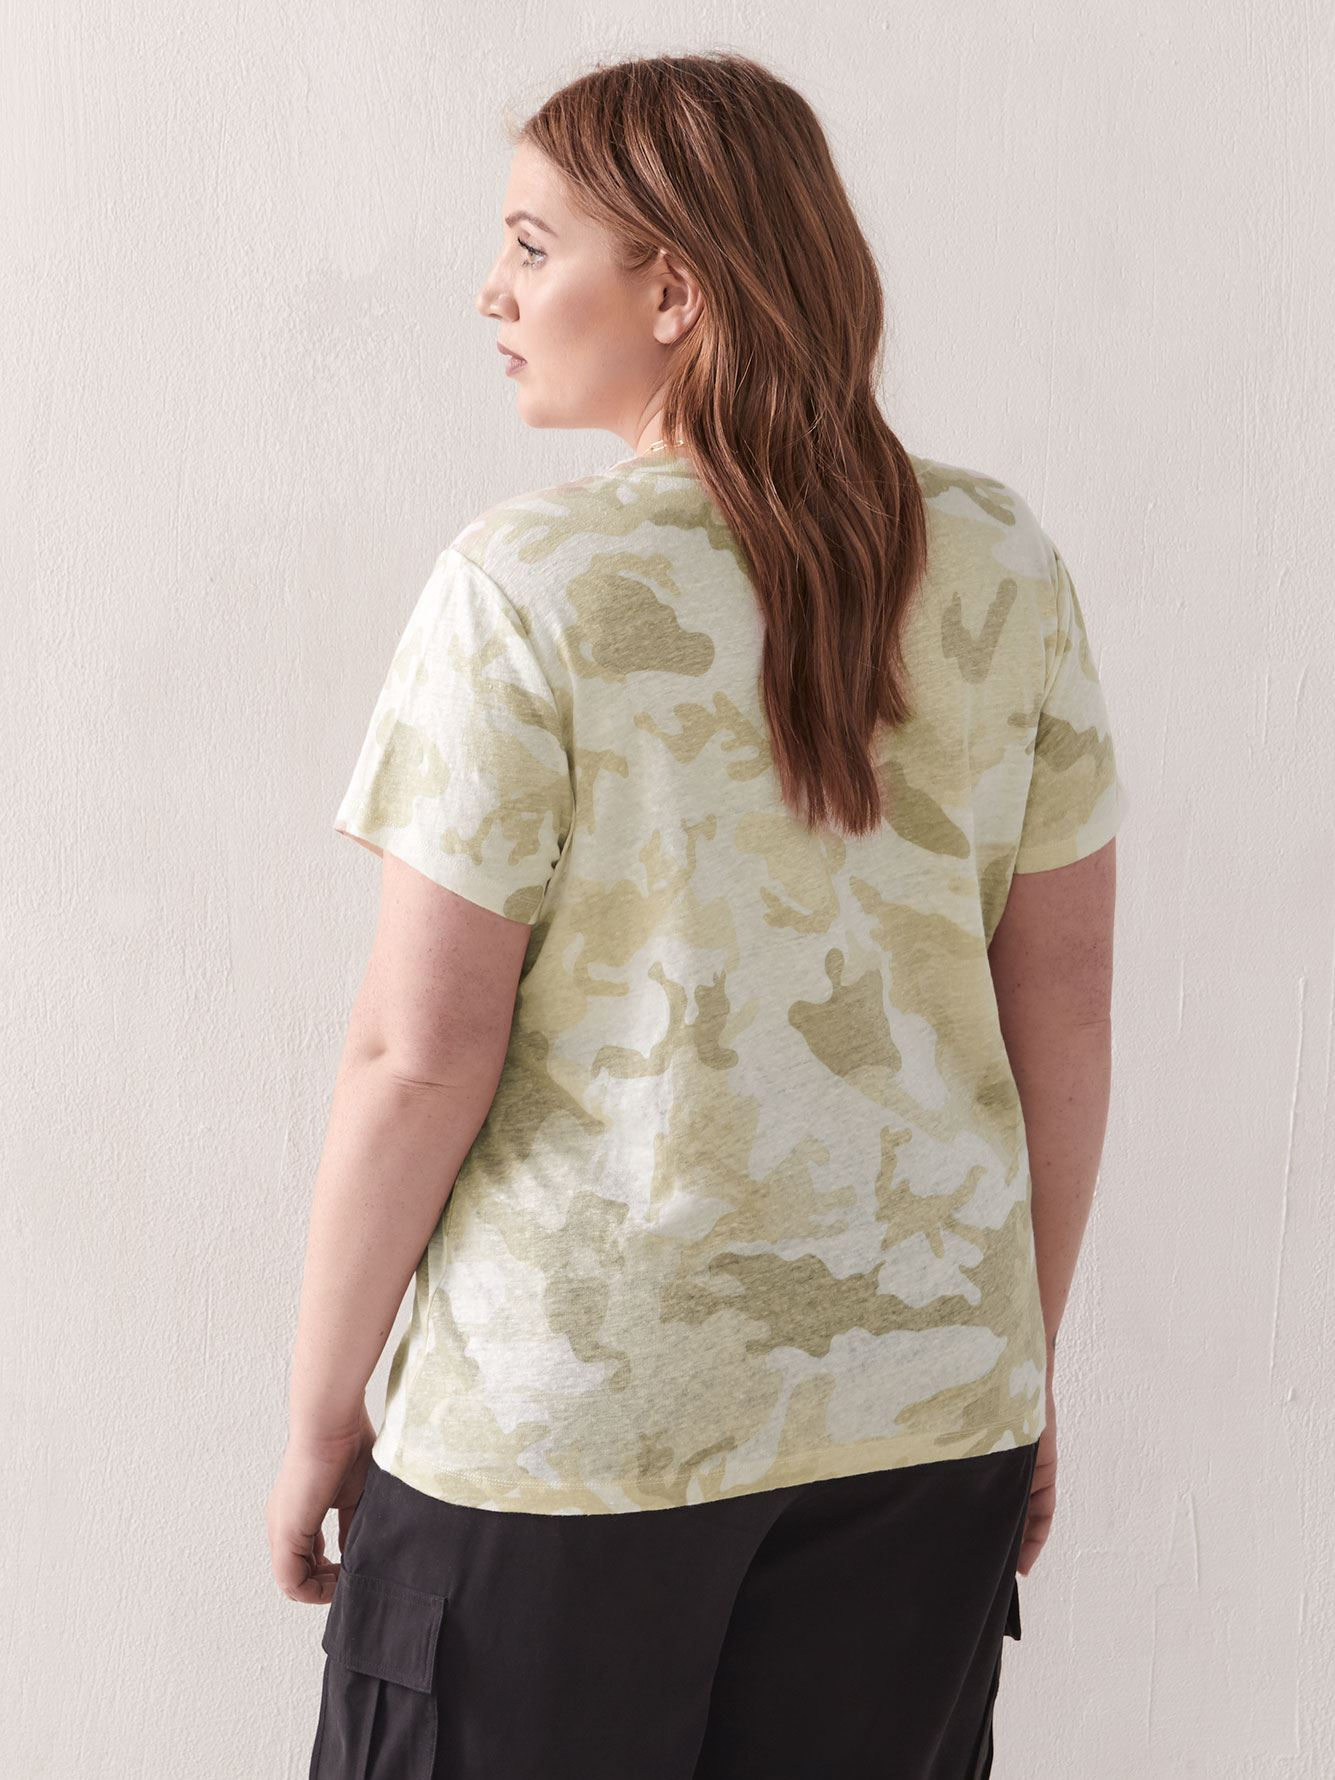 Le t-shirt parfait camo - Sanctuary